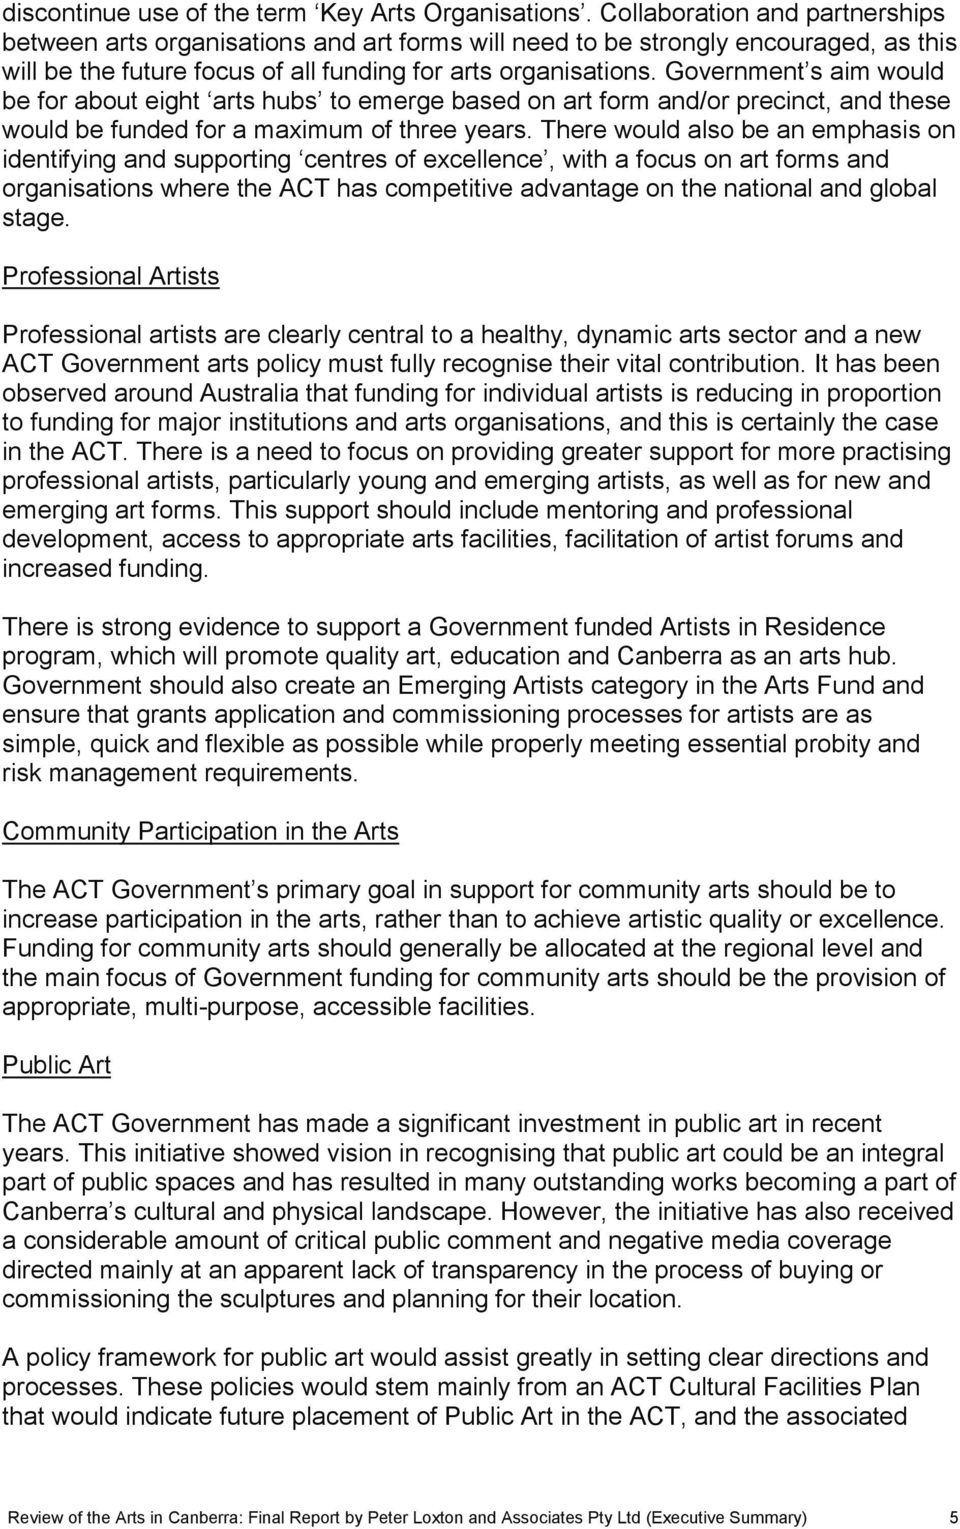 Government s aim would be for about eight arts hubs to emerge based on art form and/or precinct, and these would be funded for a maximum of three years.